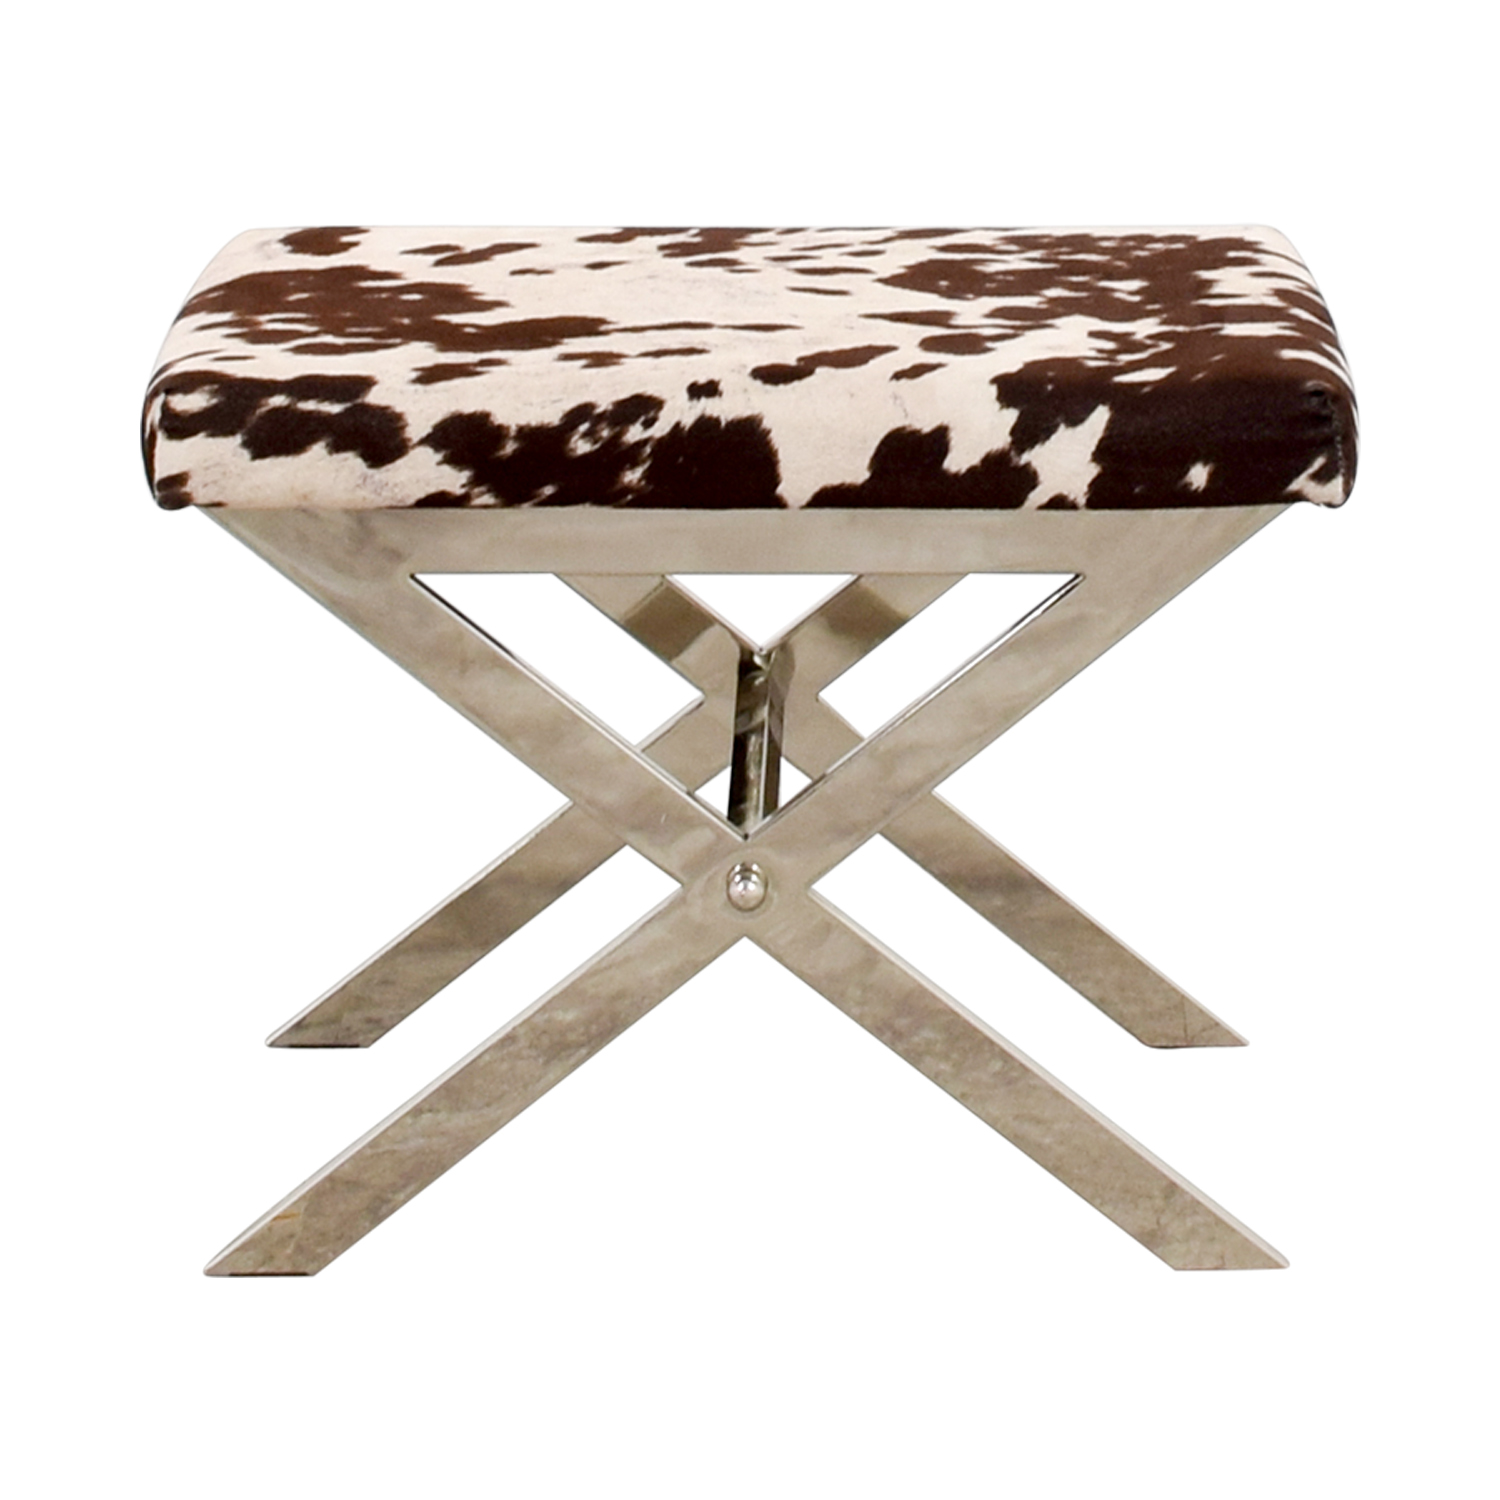 Black and White Cow Print Stool Stools